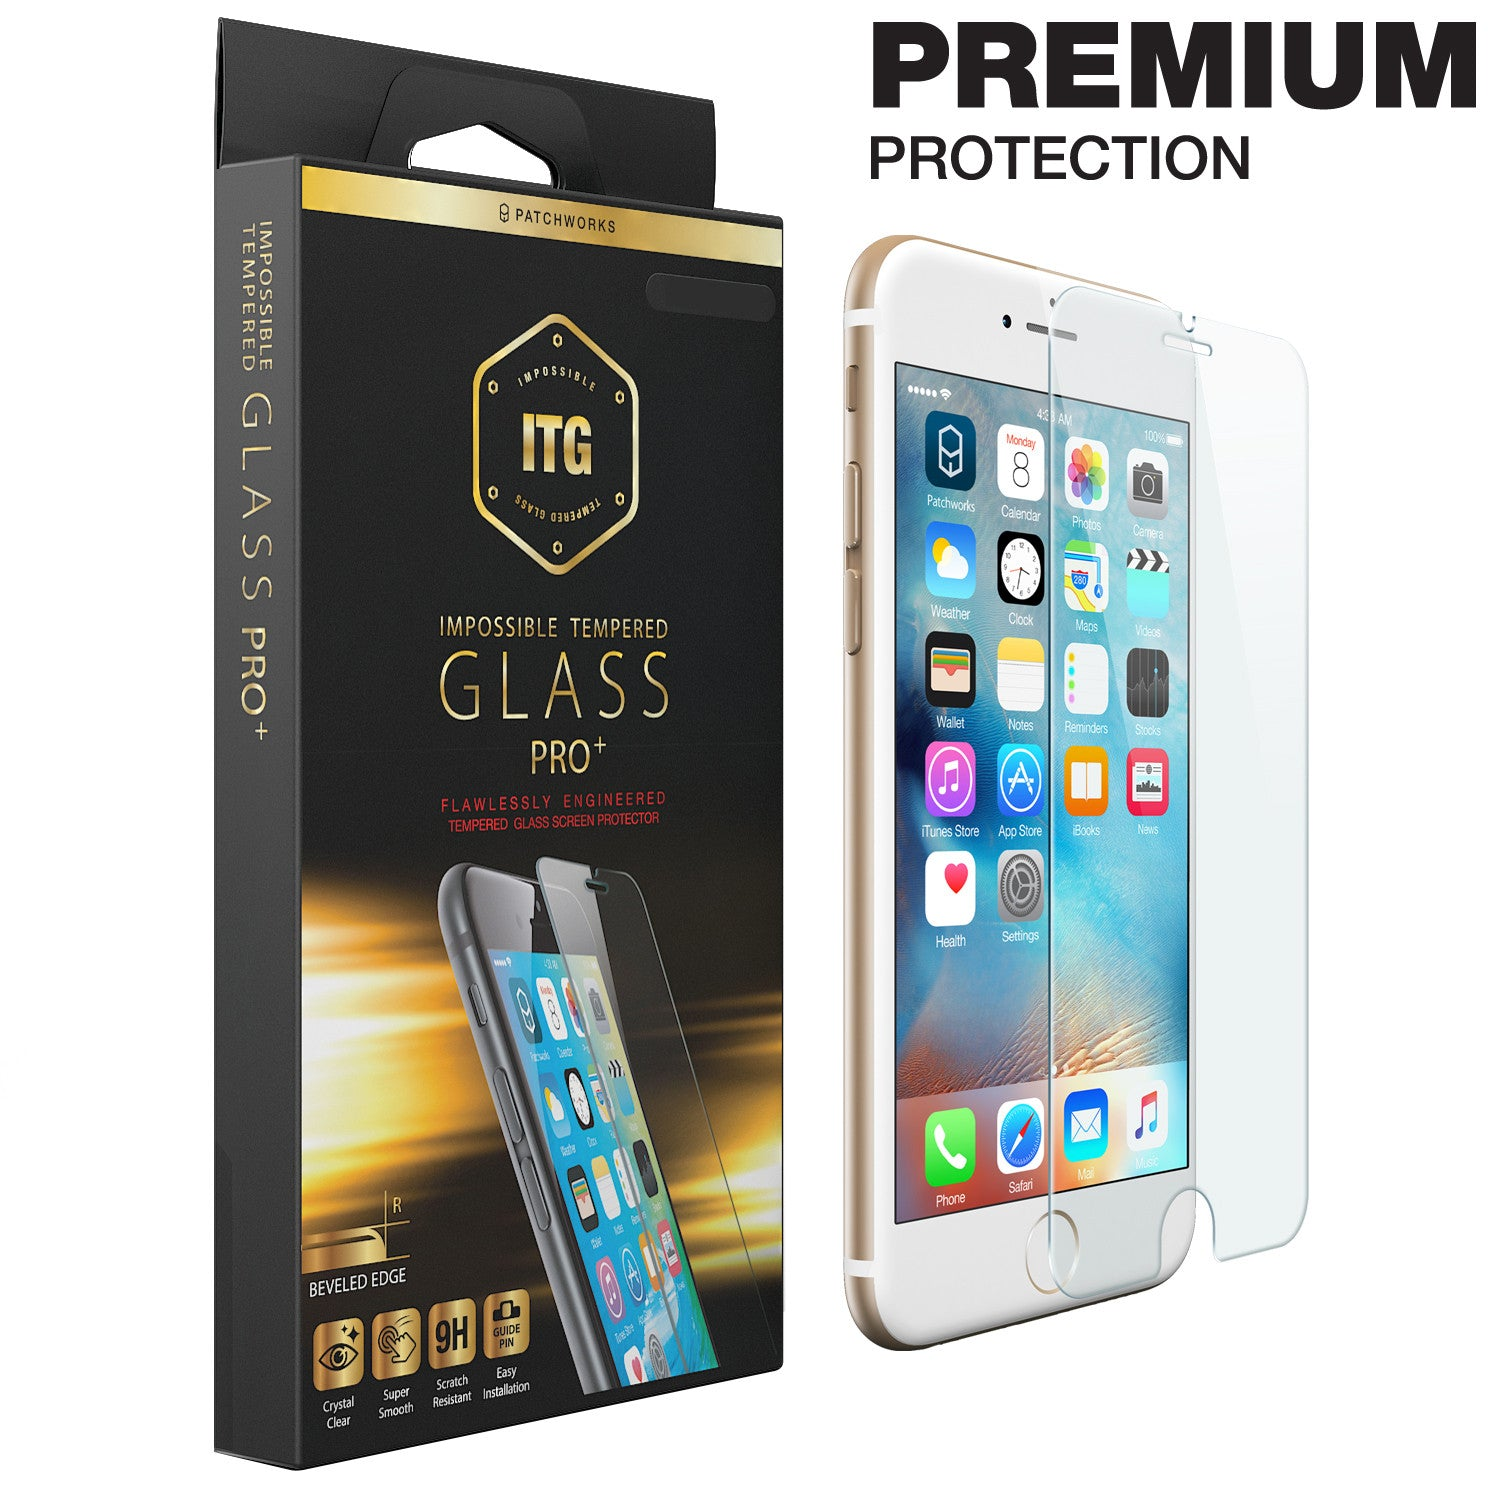 iPhone 6s Plus / 6 Plus Glass Screen Protector ITG PRO PLUS - Patchworks Global Inc  - 1